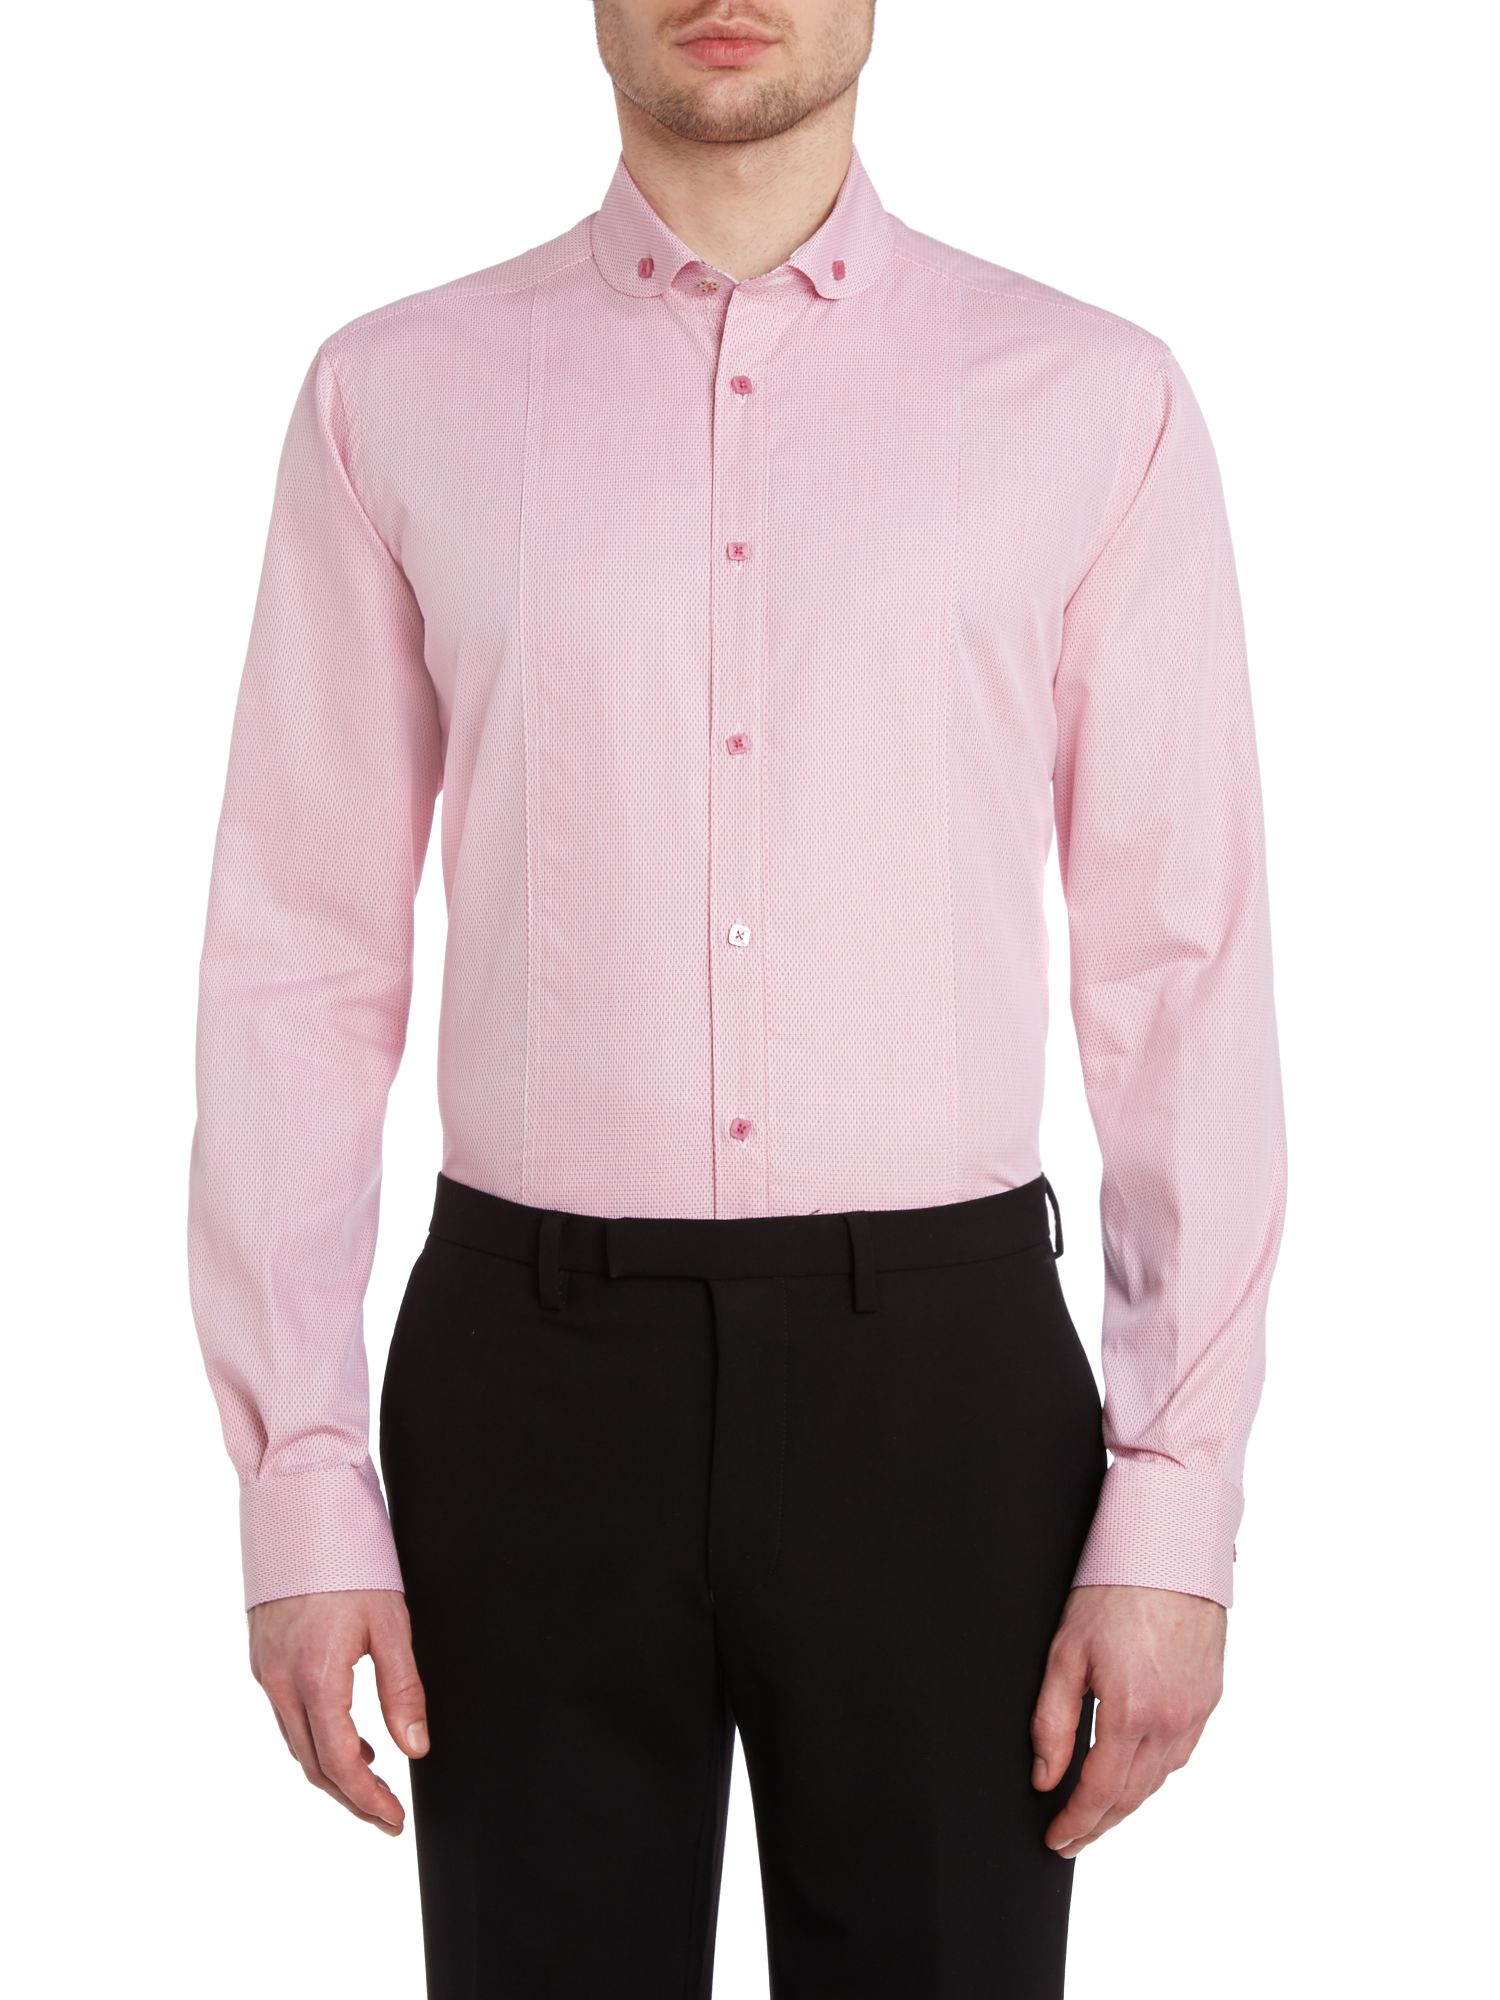 Andovar regular fit diamond geometric shirt